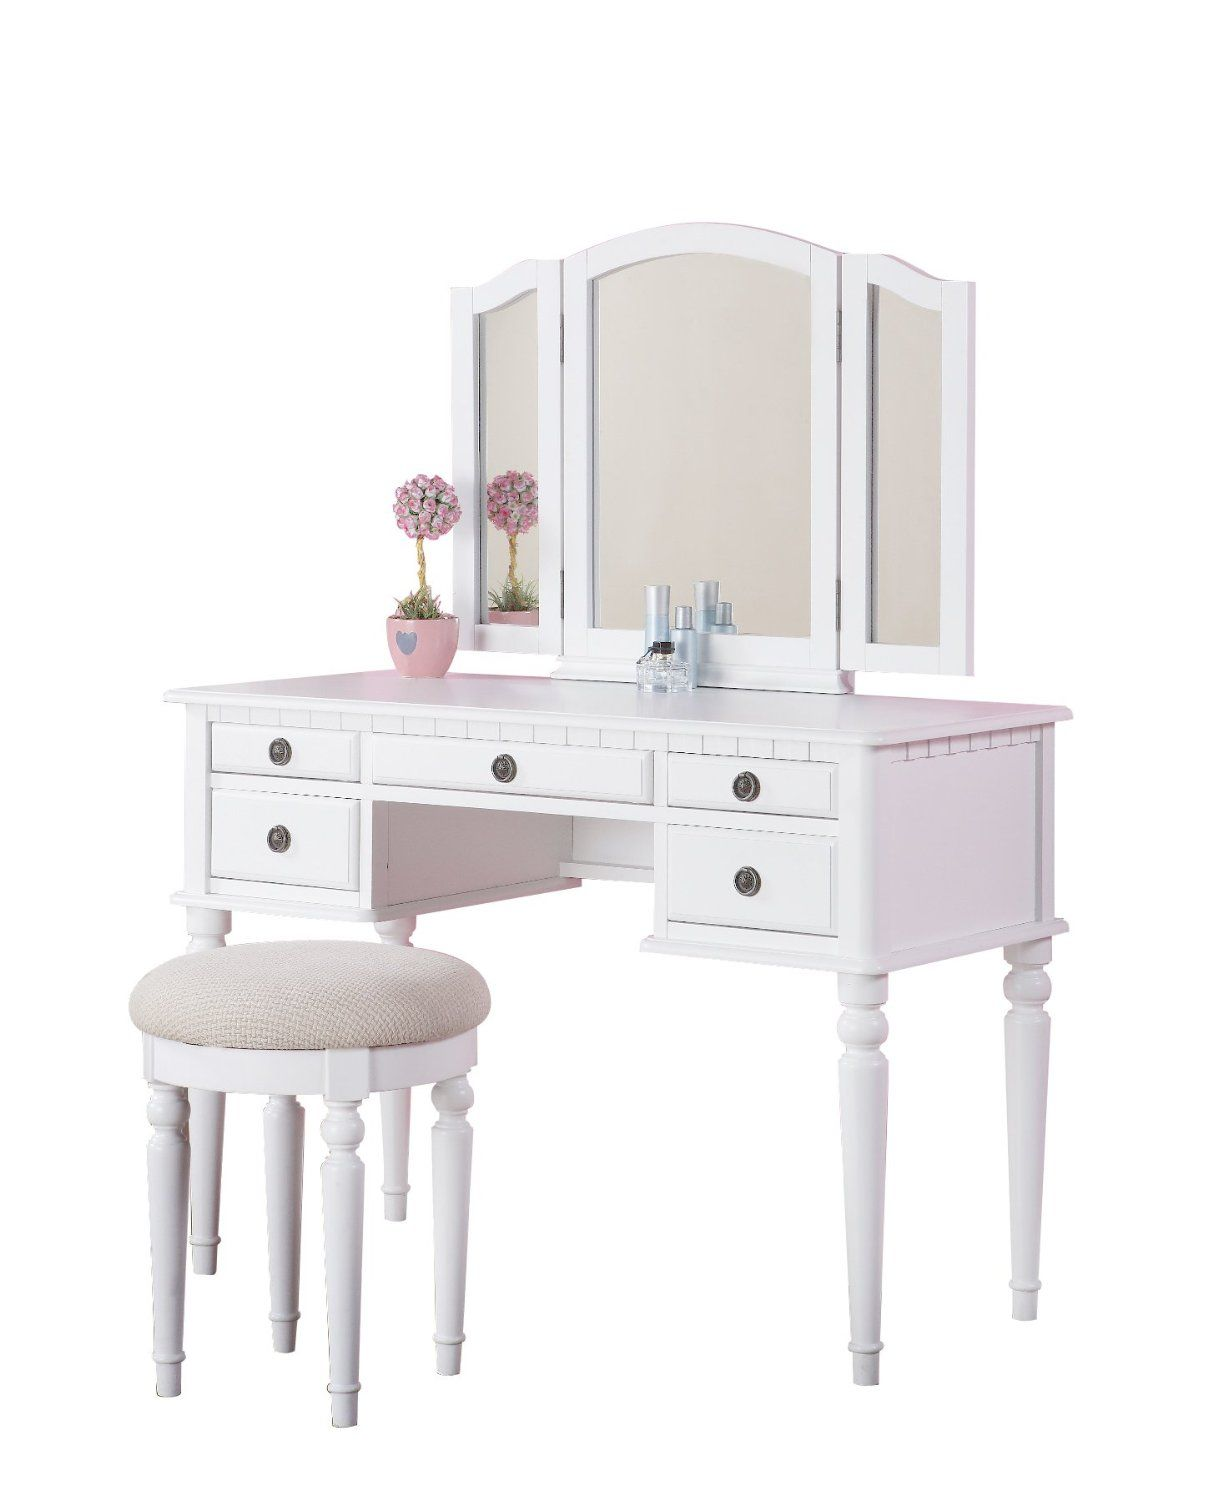 all white makeup vanity. Croix Vanity Set with Stool in White  Lowest price online on all Poundex Bobkona St AmazonSmile Collection